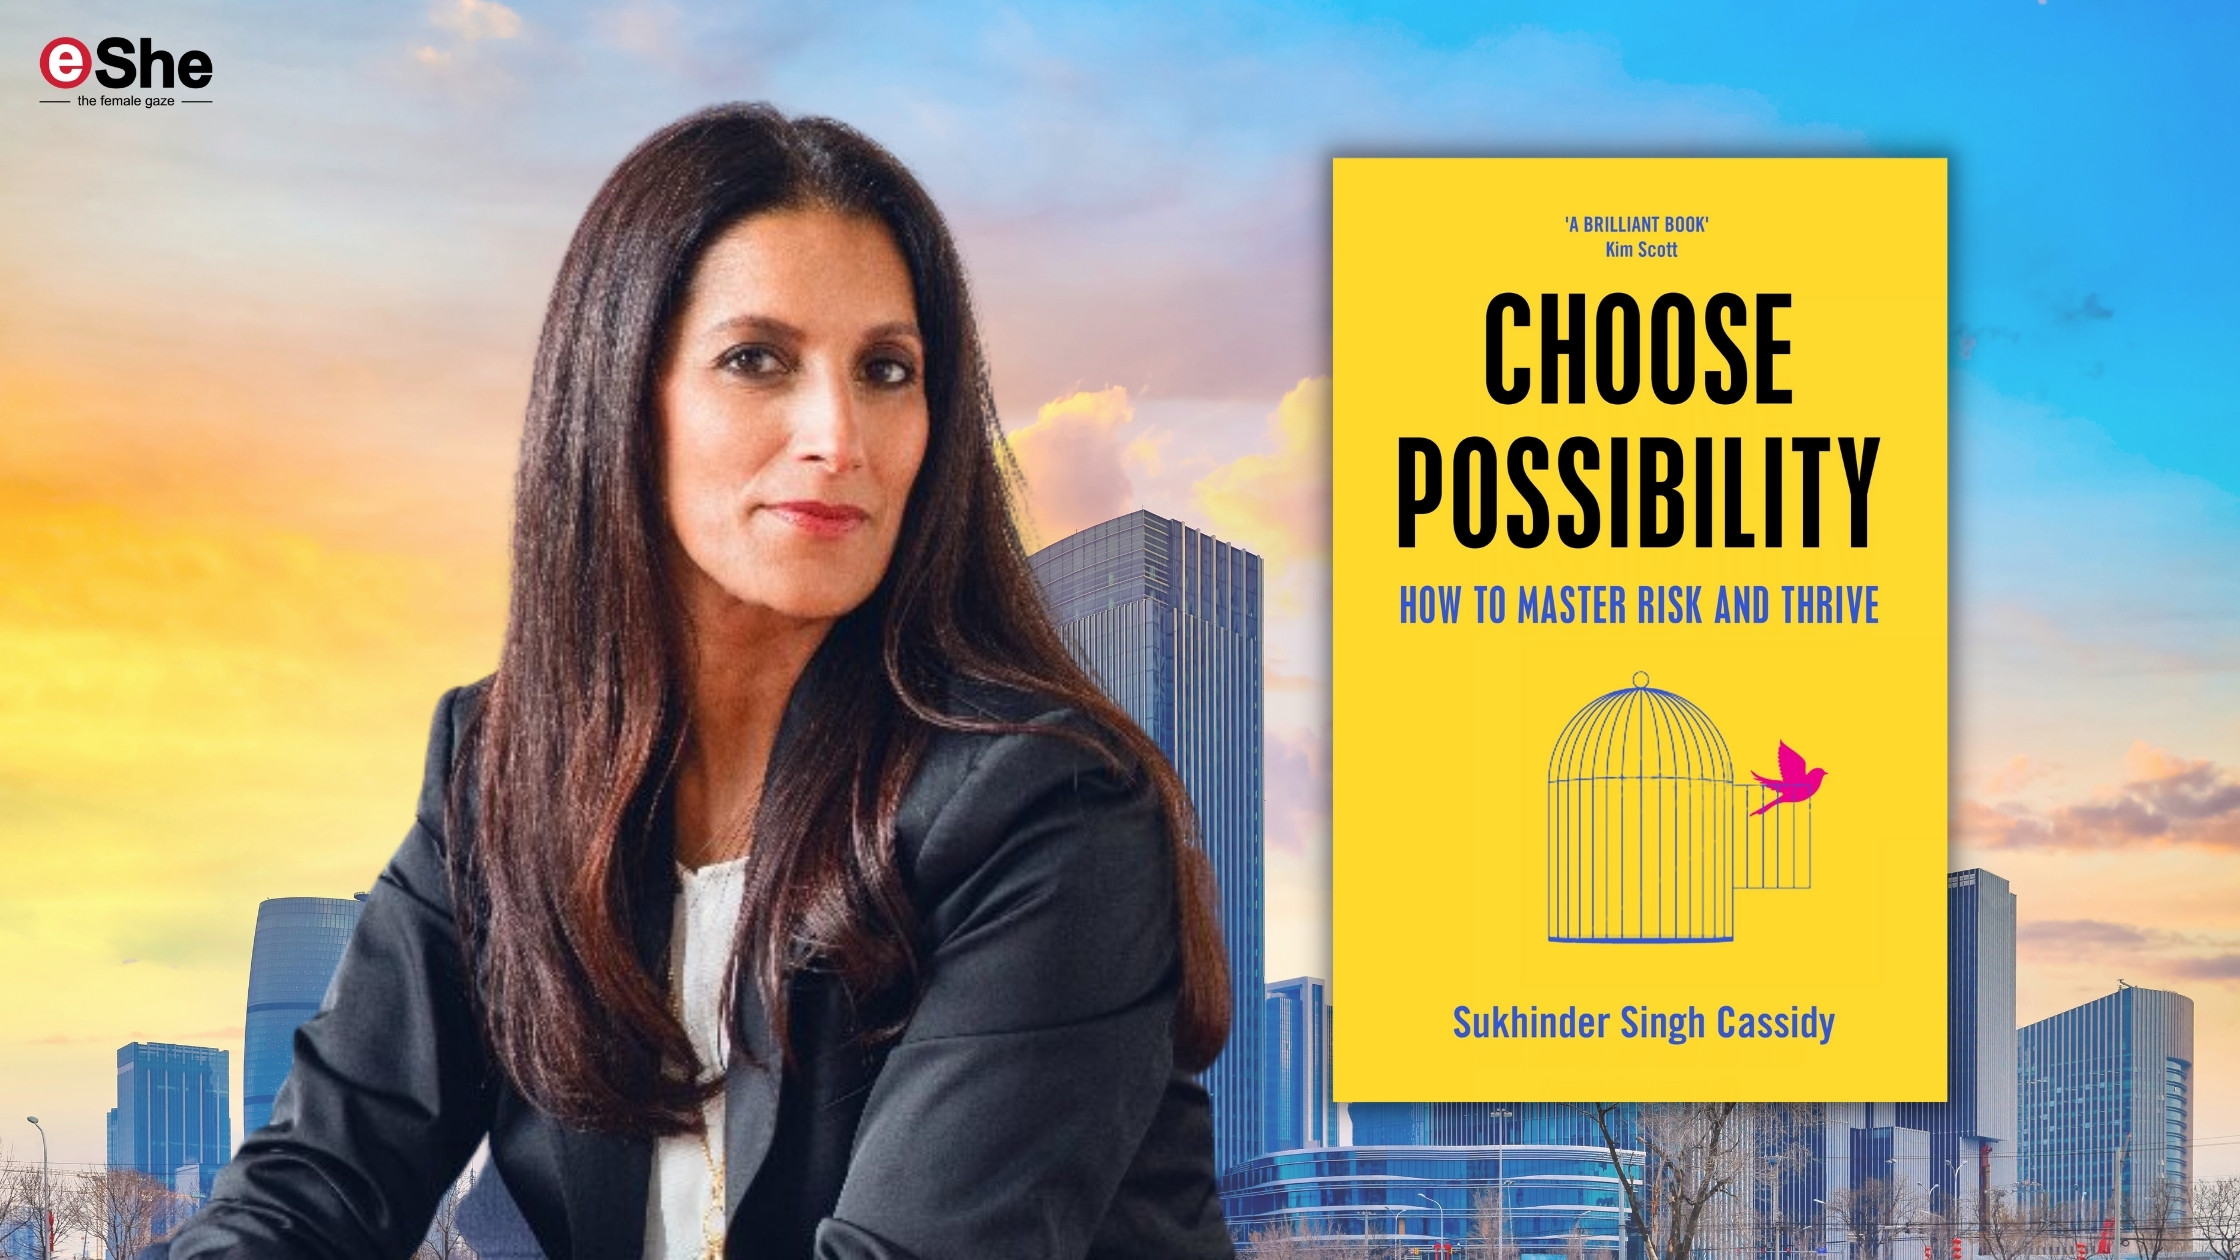 eShe TV: Sukhinder Singh Cassidy on taking risks and choosing possibility, even if it's just 1% at a time